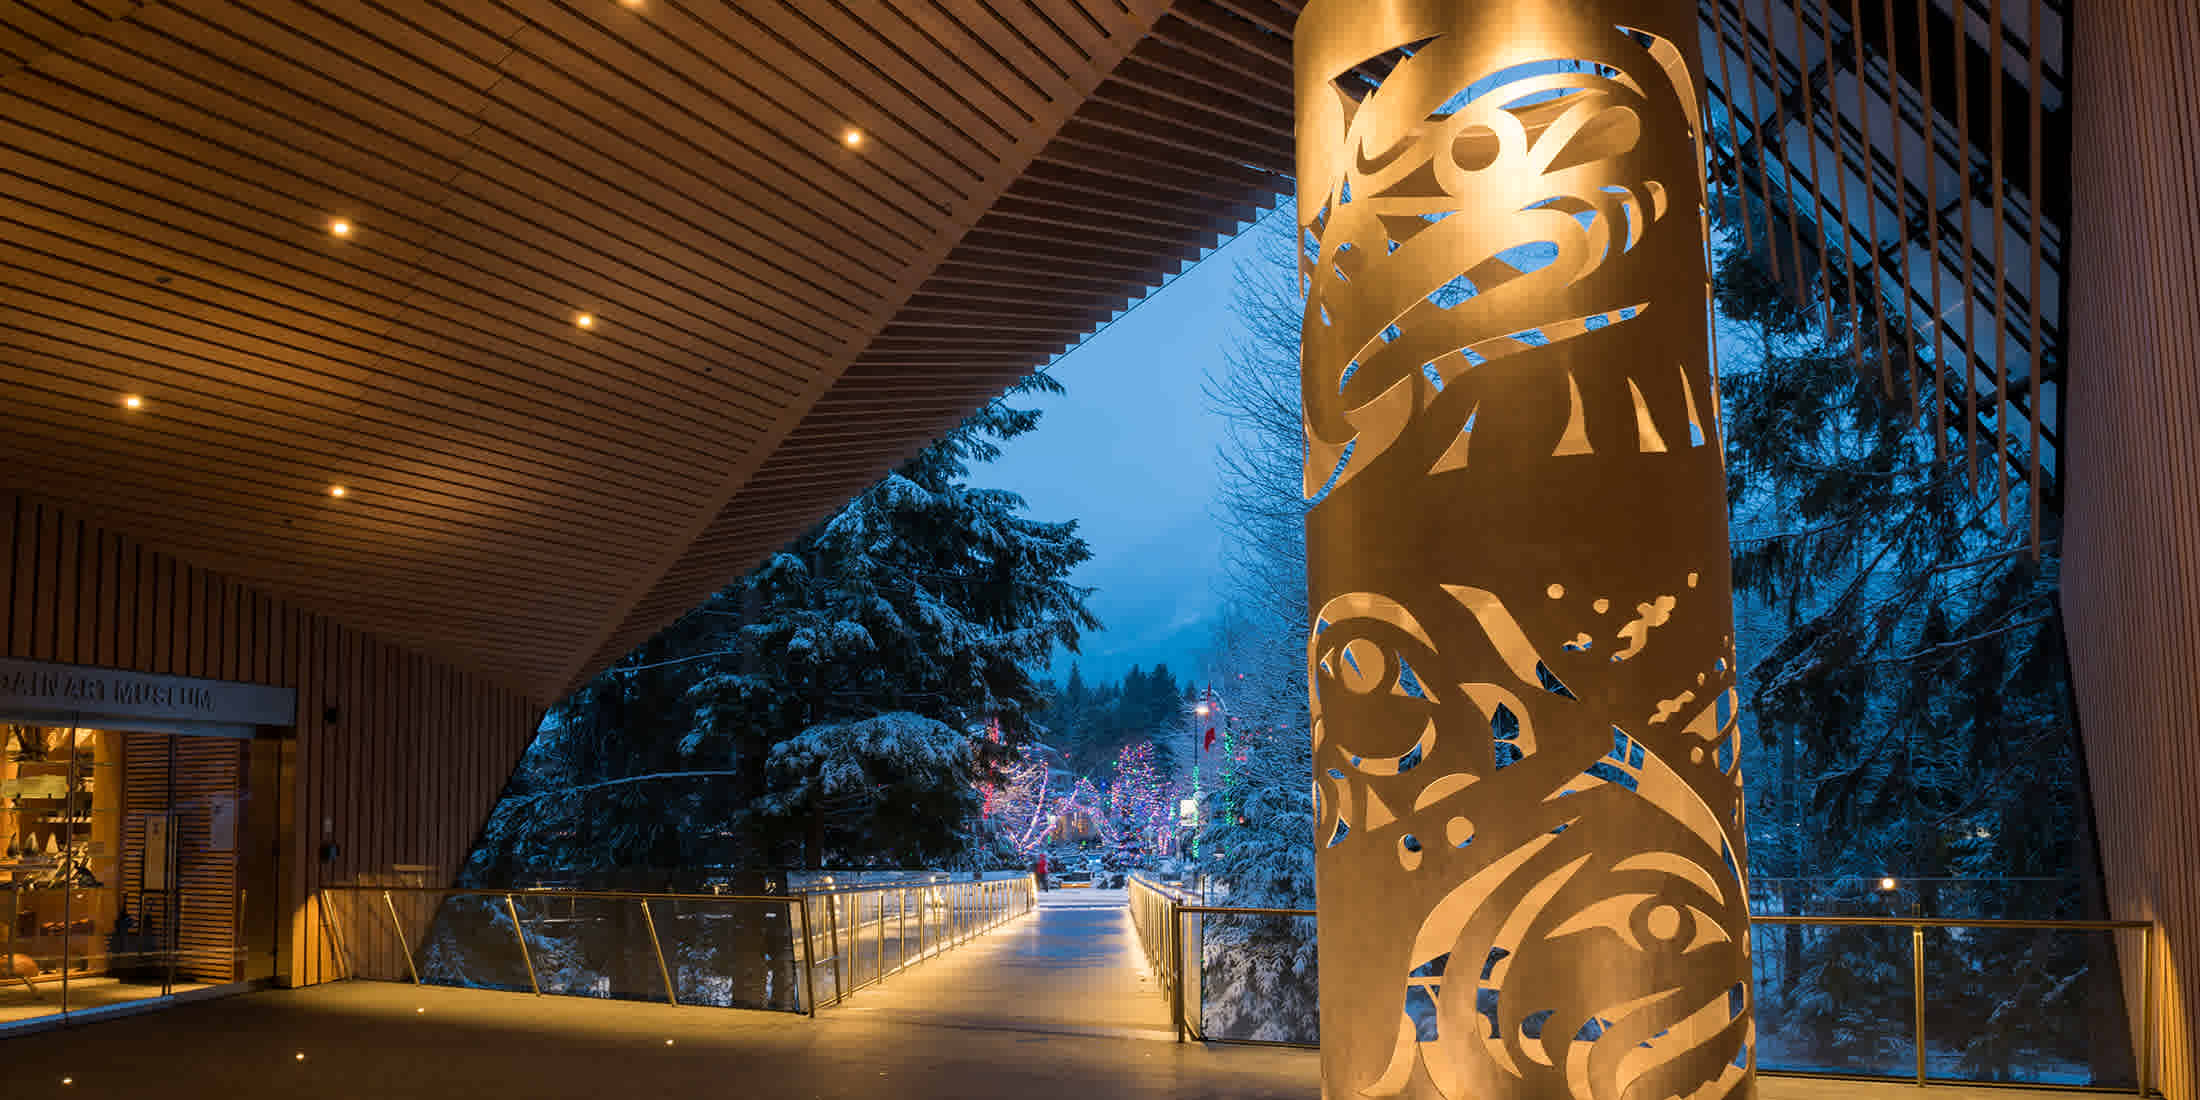 Art gallery at Audain Art Museum in Whistler